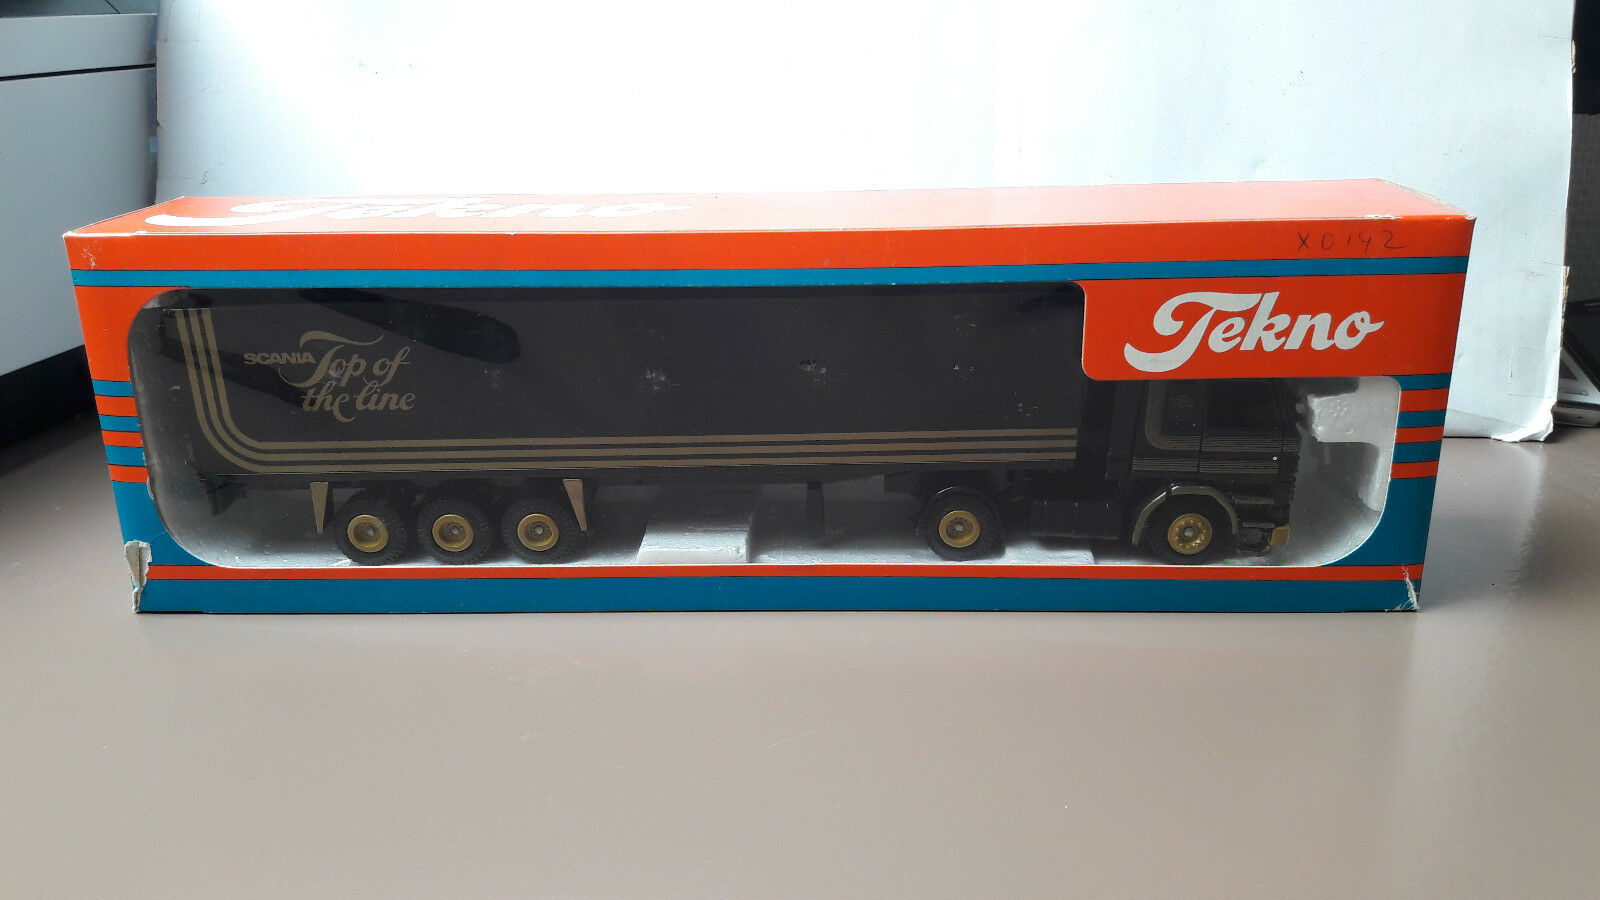 Tekno Scania 142M Top of the Line  Trailer    1 50  Org. in OVP  PROMO SELTEN